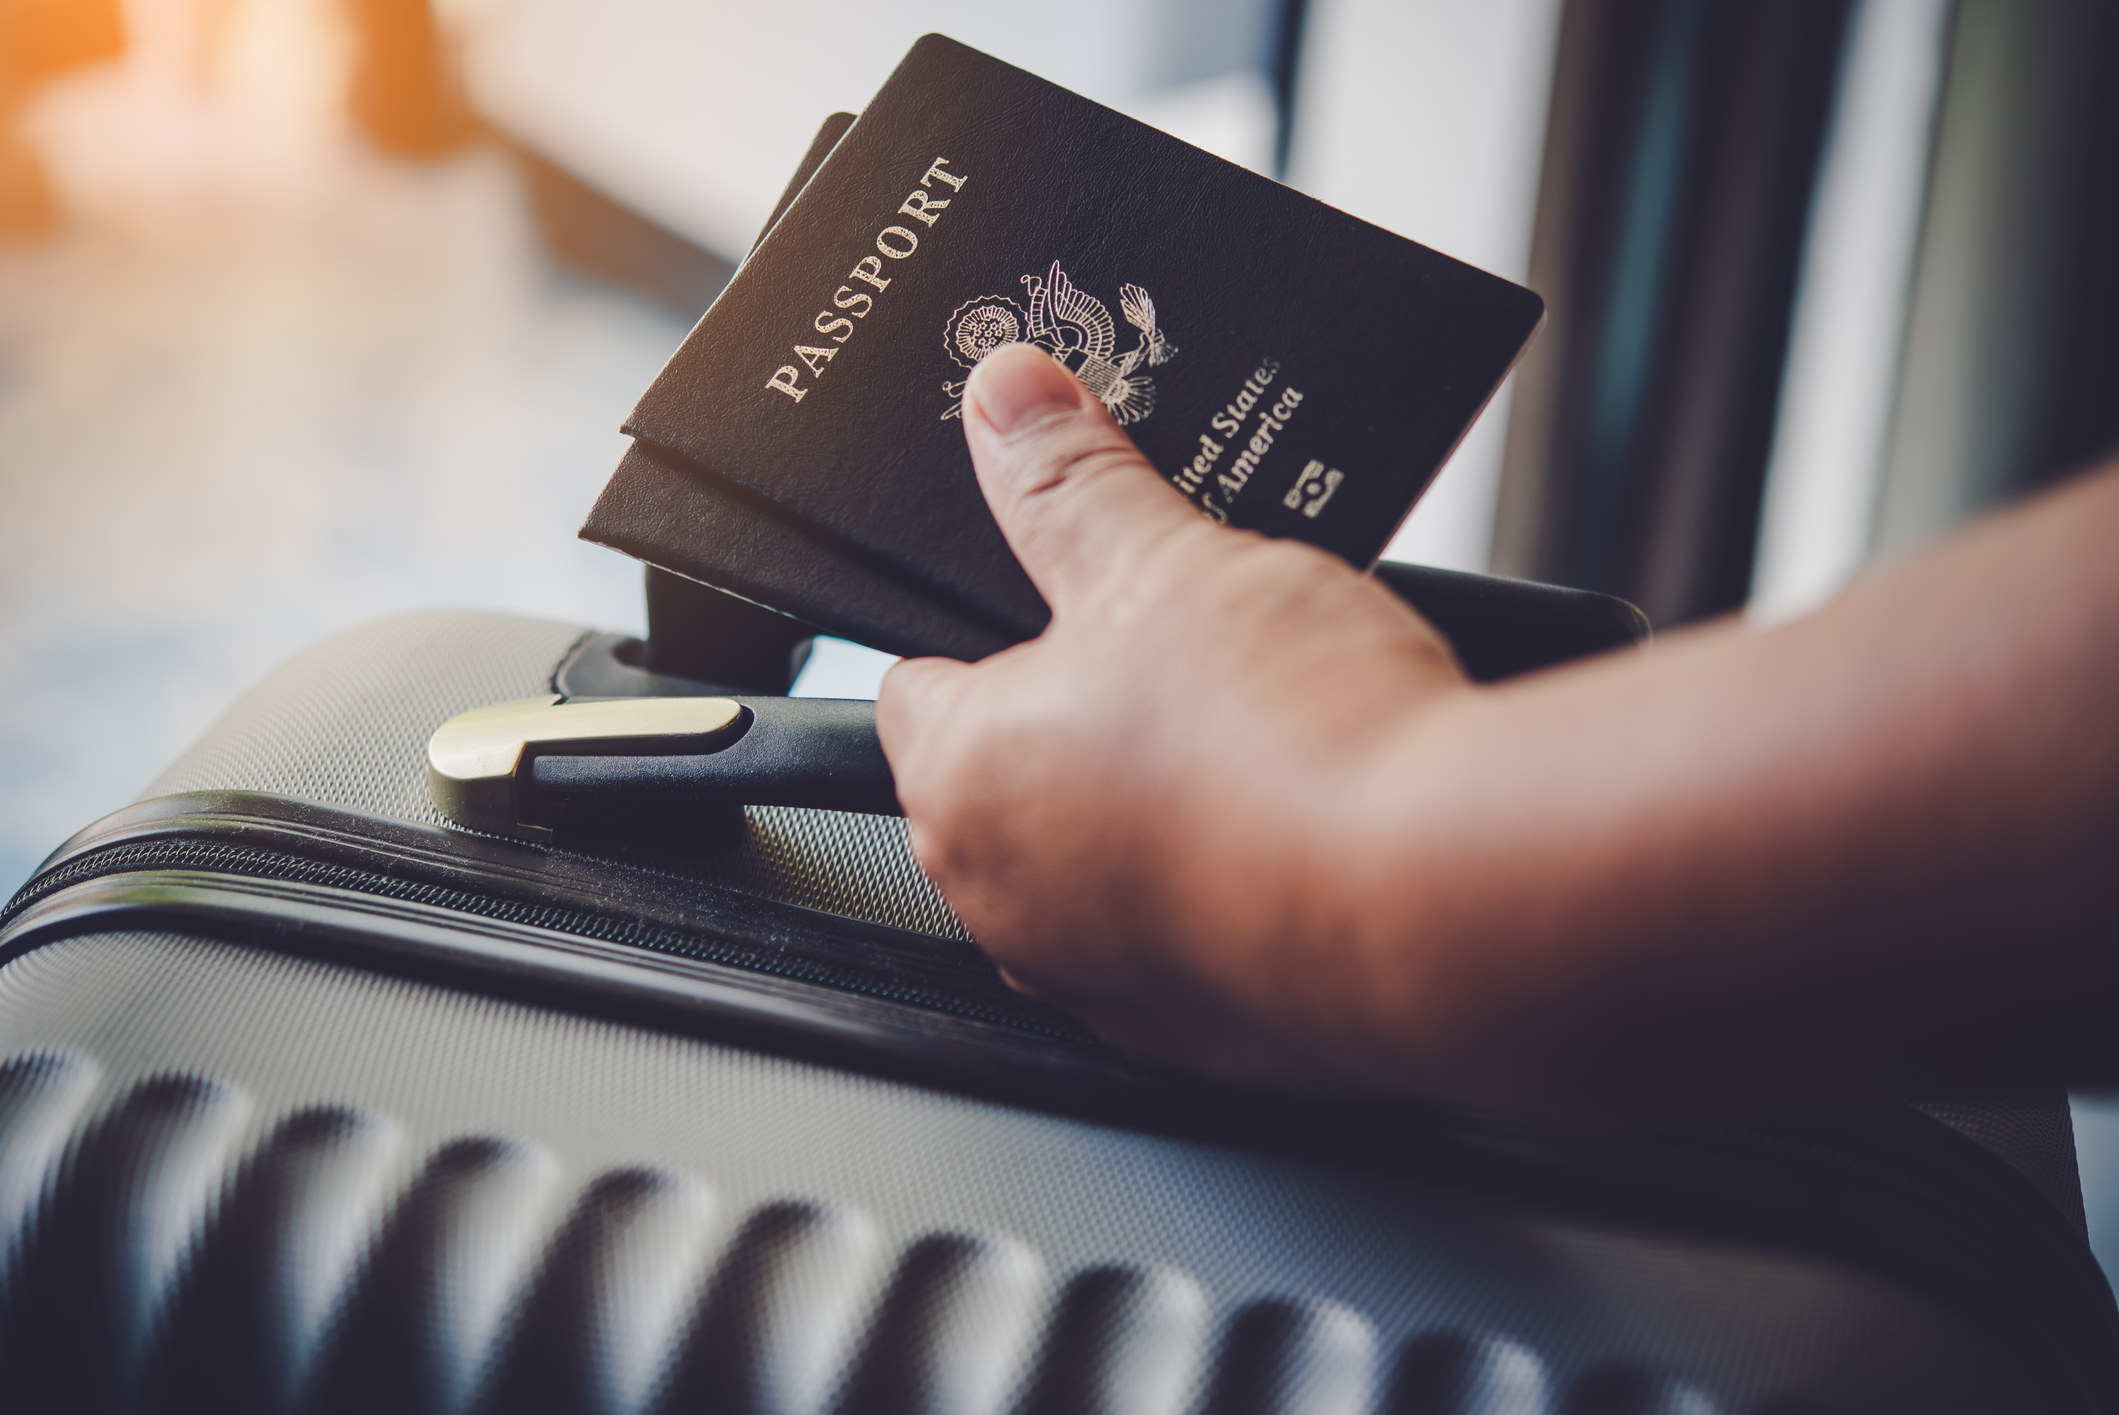 At the airport with luggage and passports in hand